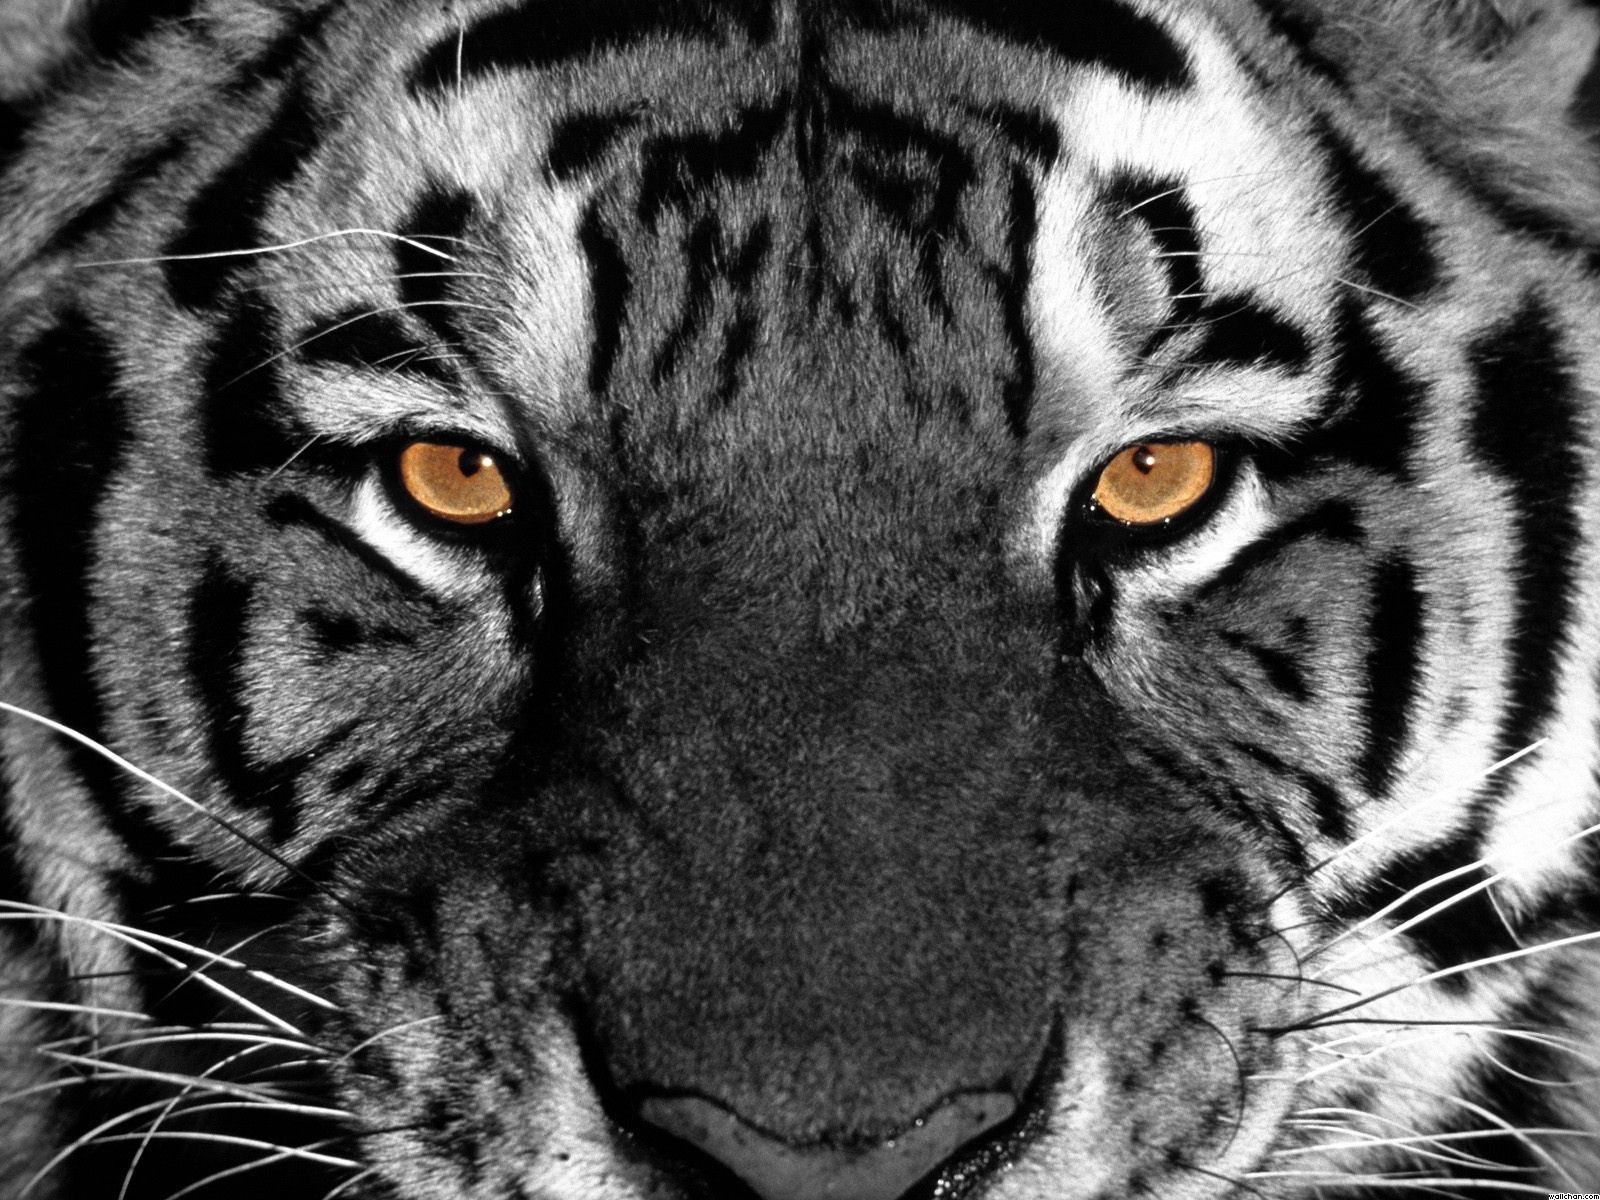 Angry Tiger Images Hd 1920x1080 Tiger Wallpaper Full Hd 65 Images